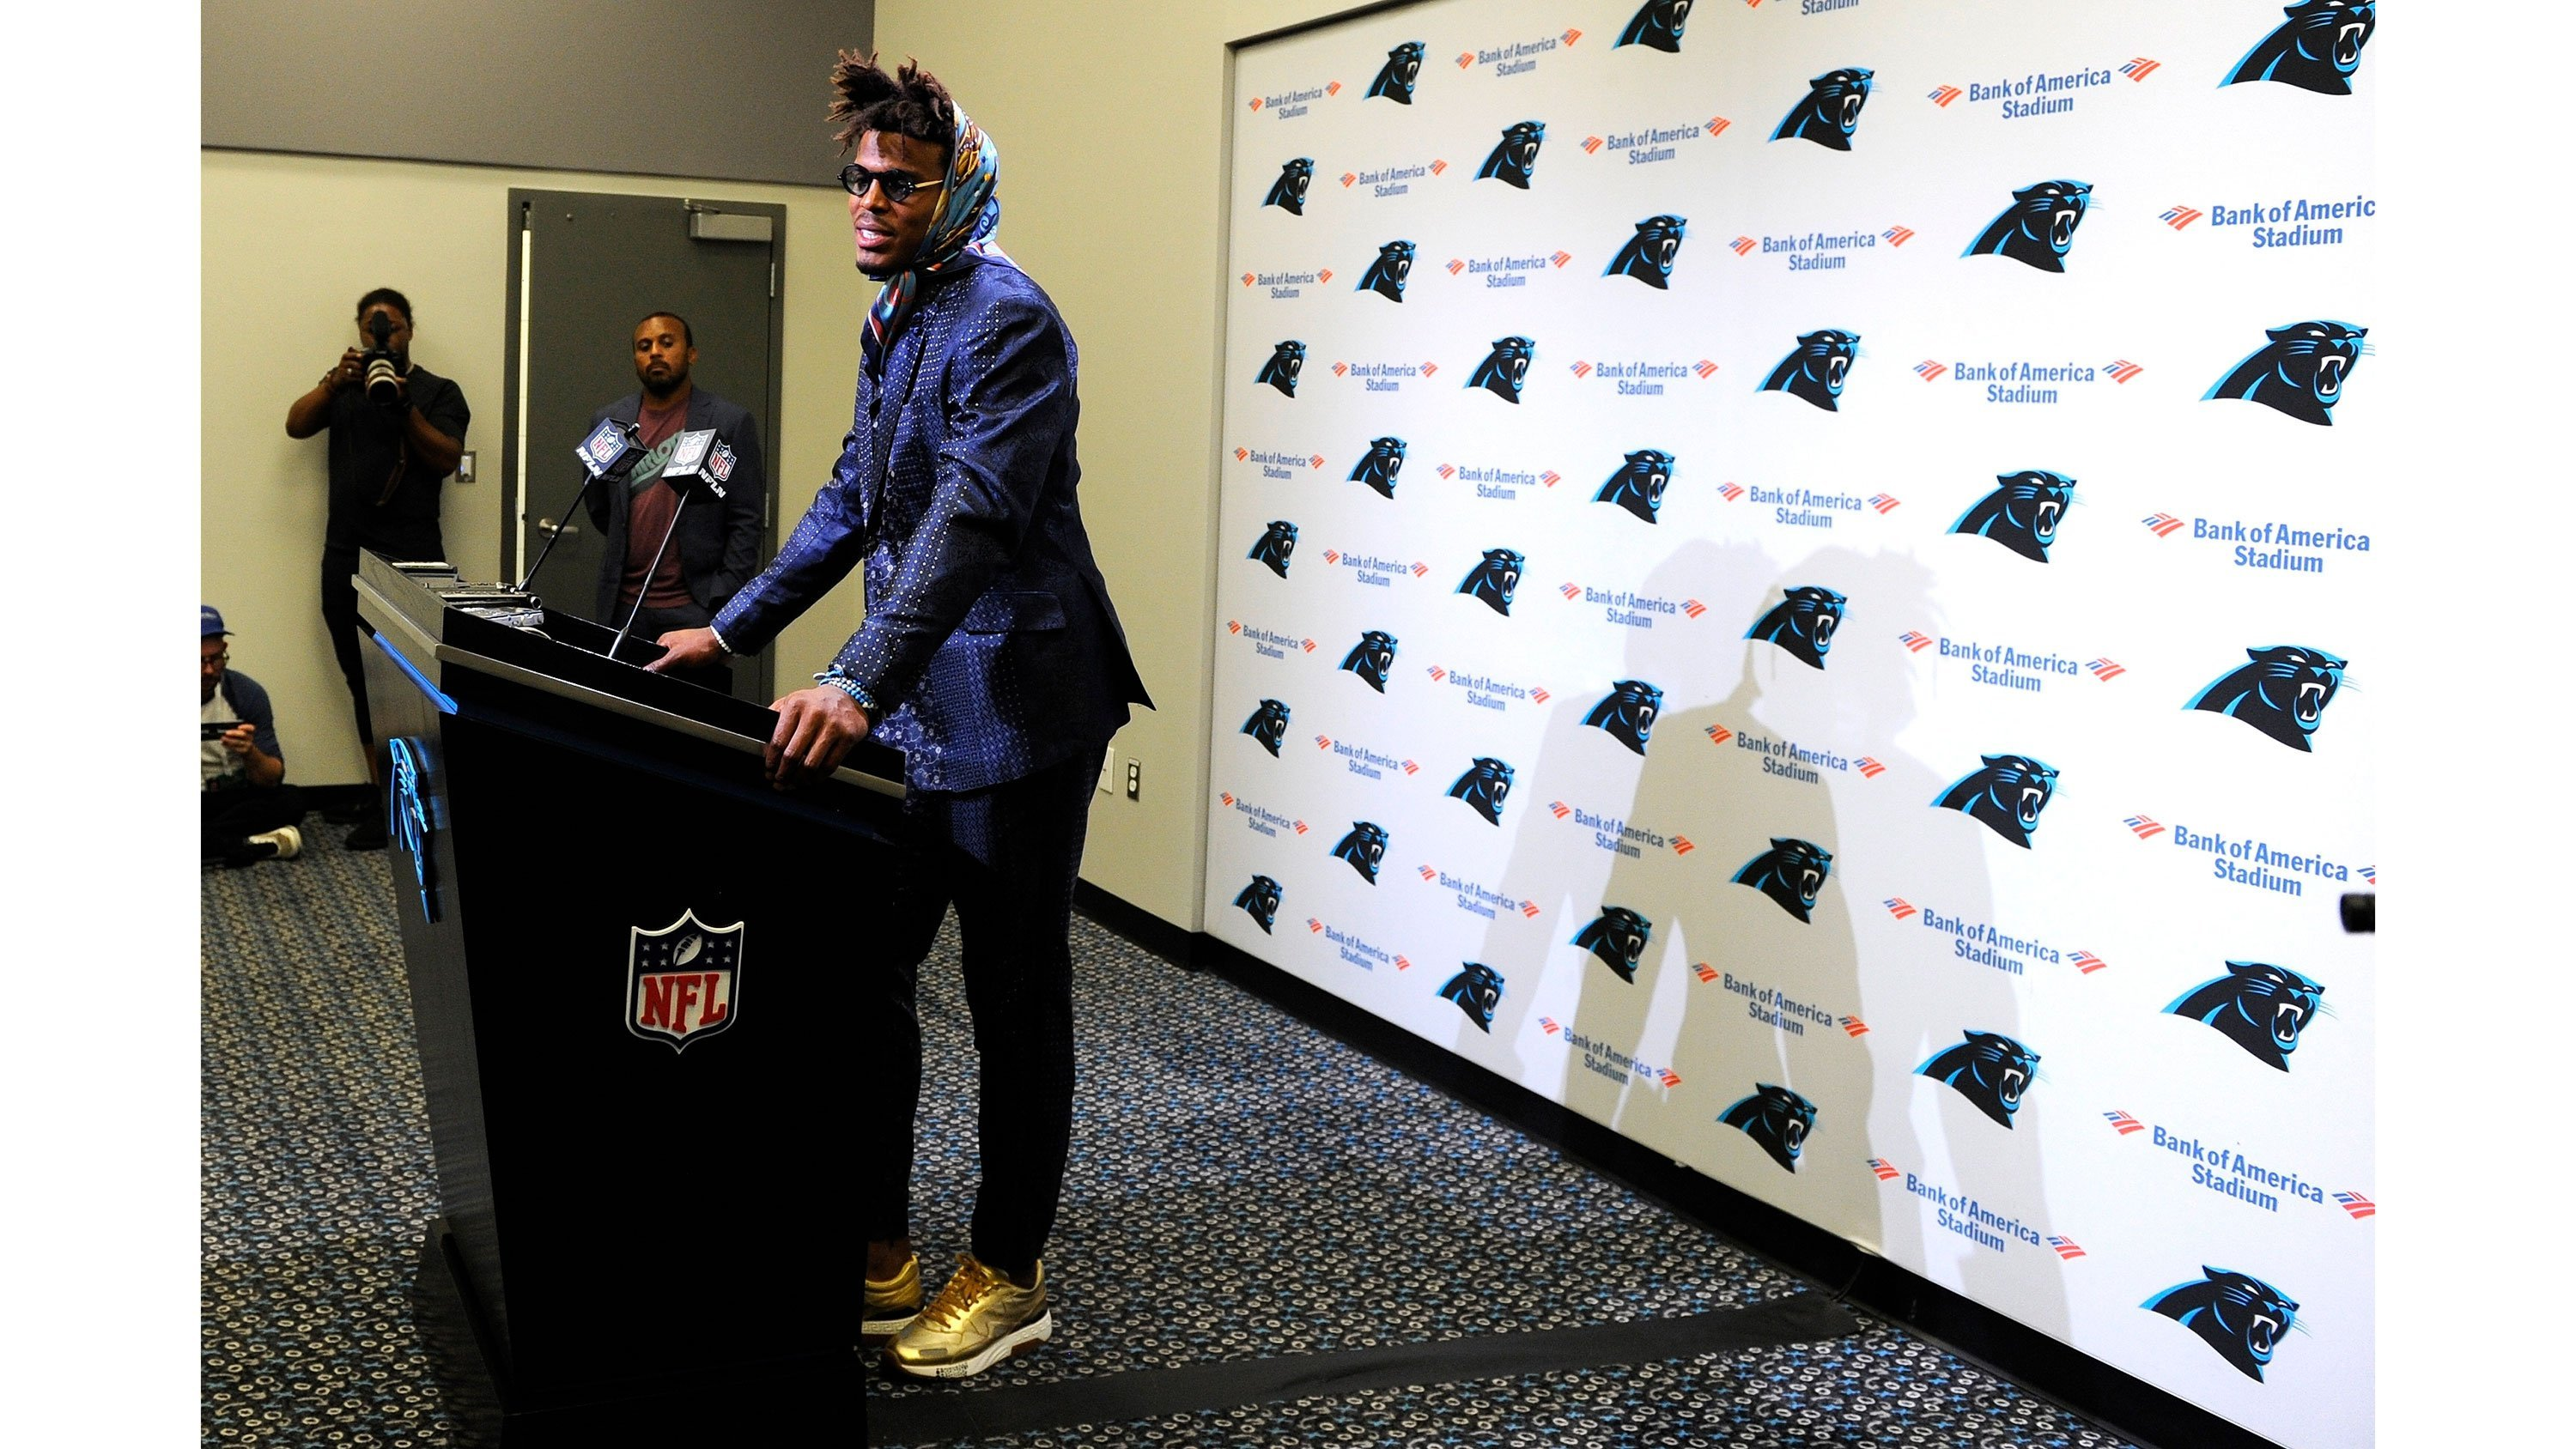 Even by Cam Newton's standards, his most recent post-game outfit was a head-turner